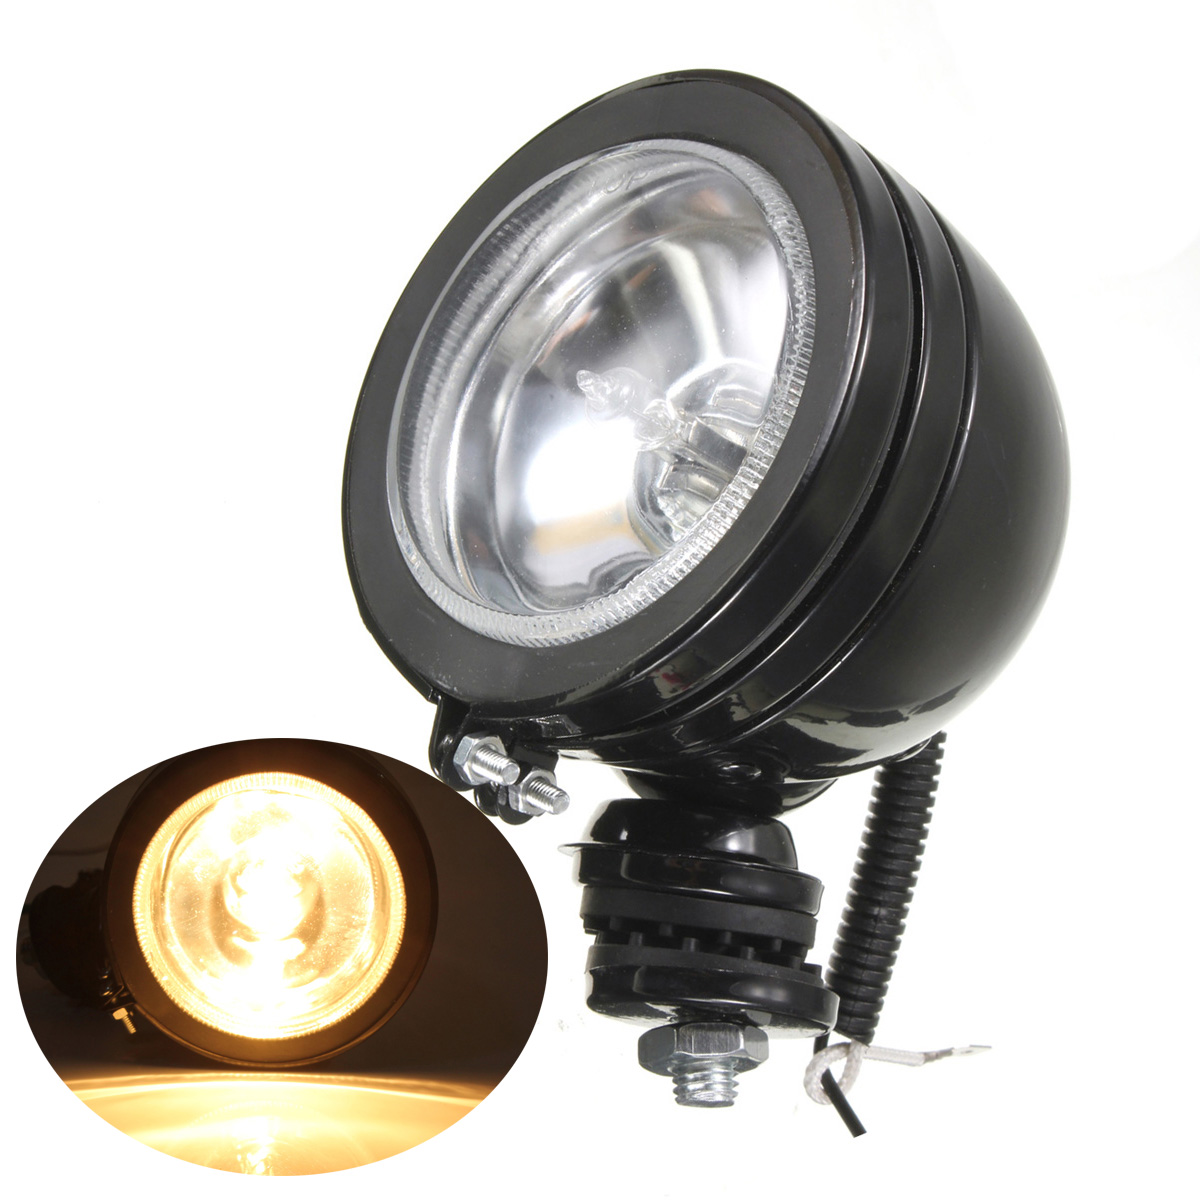 3 h3 12v 55w led car spotlight spot halogen fog light white beam work lamps ebay. Black Bedroom Furniture Sets. Home Design Ideas